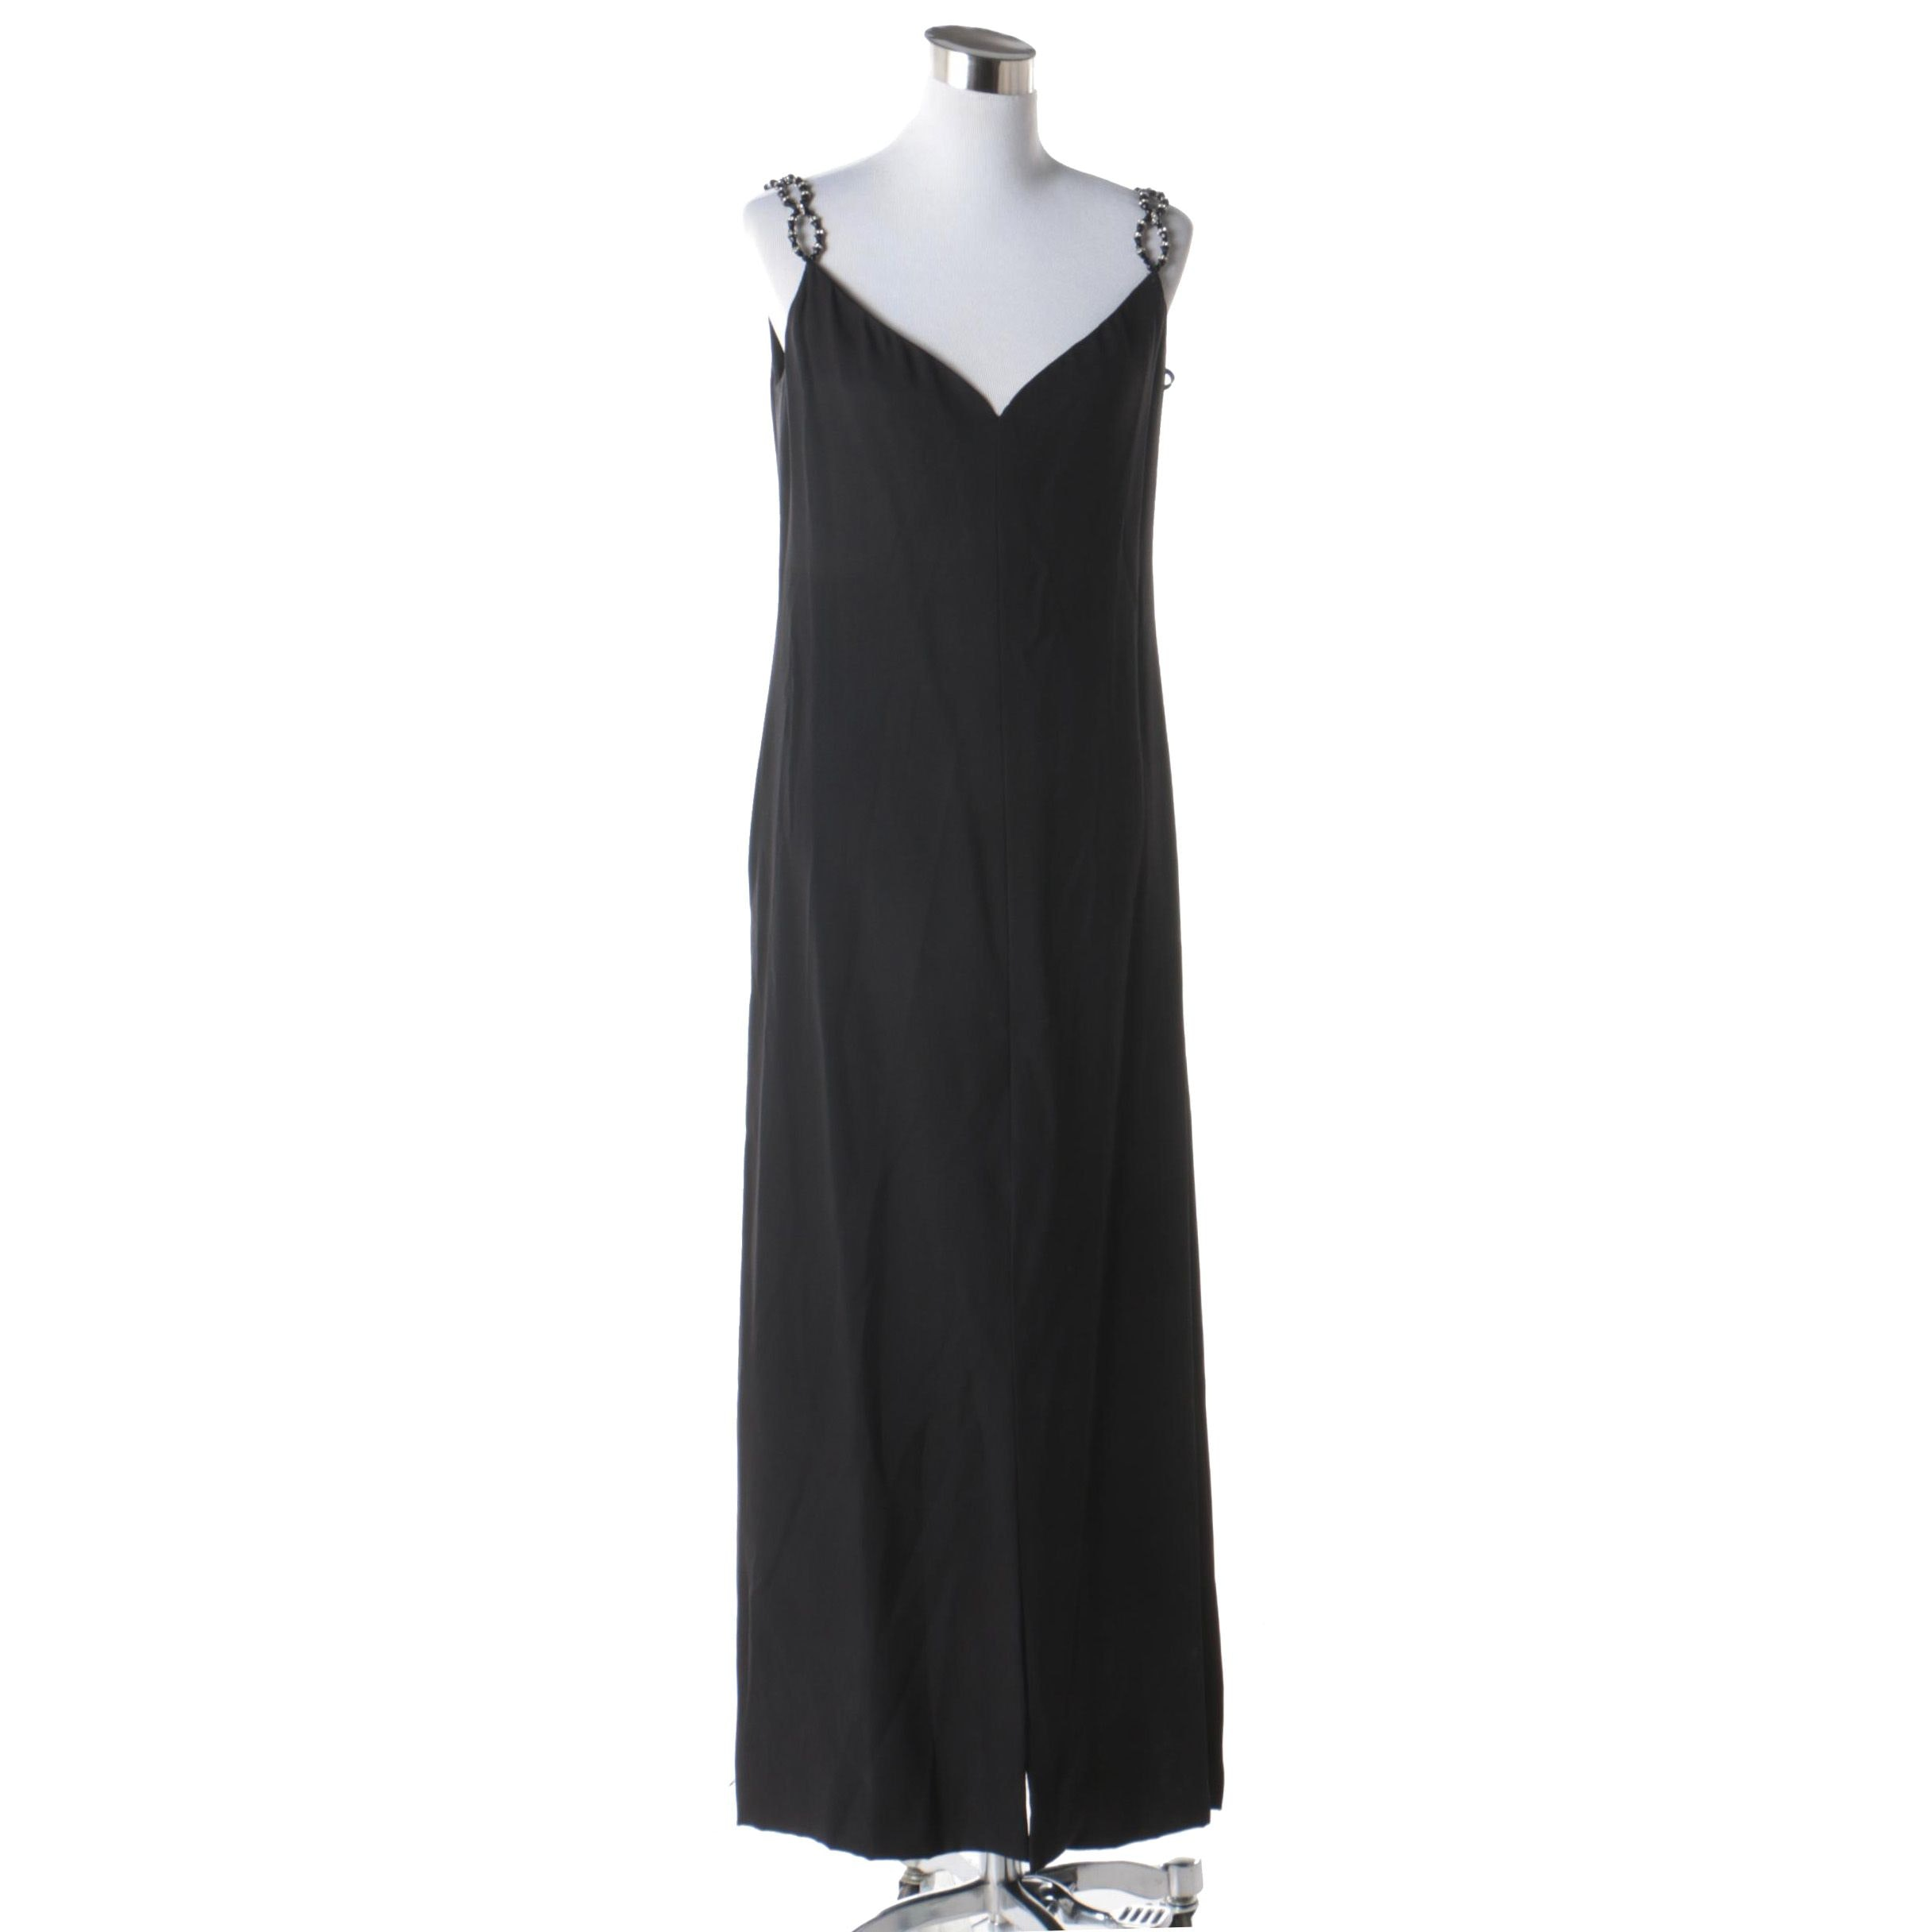 Adele Simpson for Saks Fifth Avenue Black Sleeveless Gown with Beaded Straps